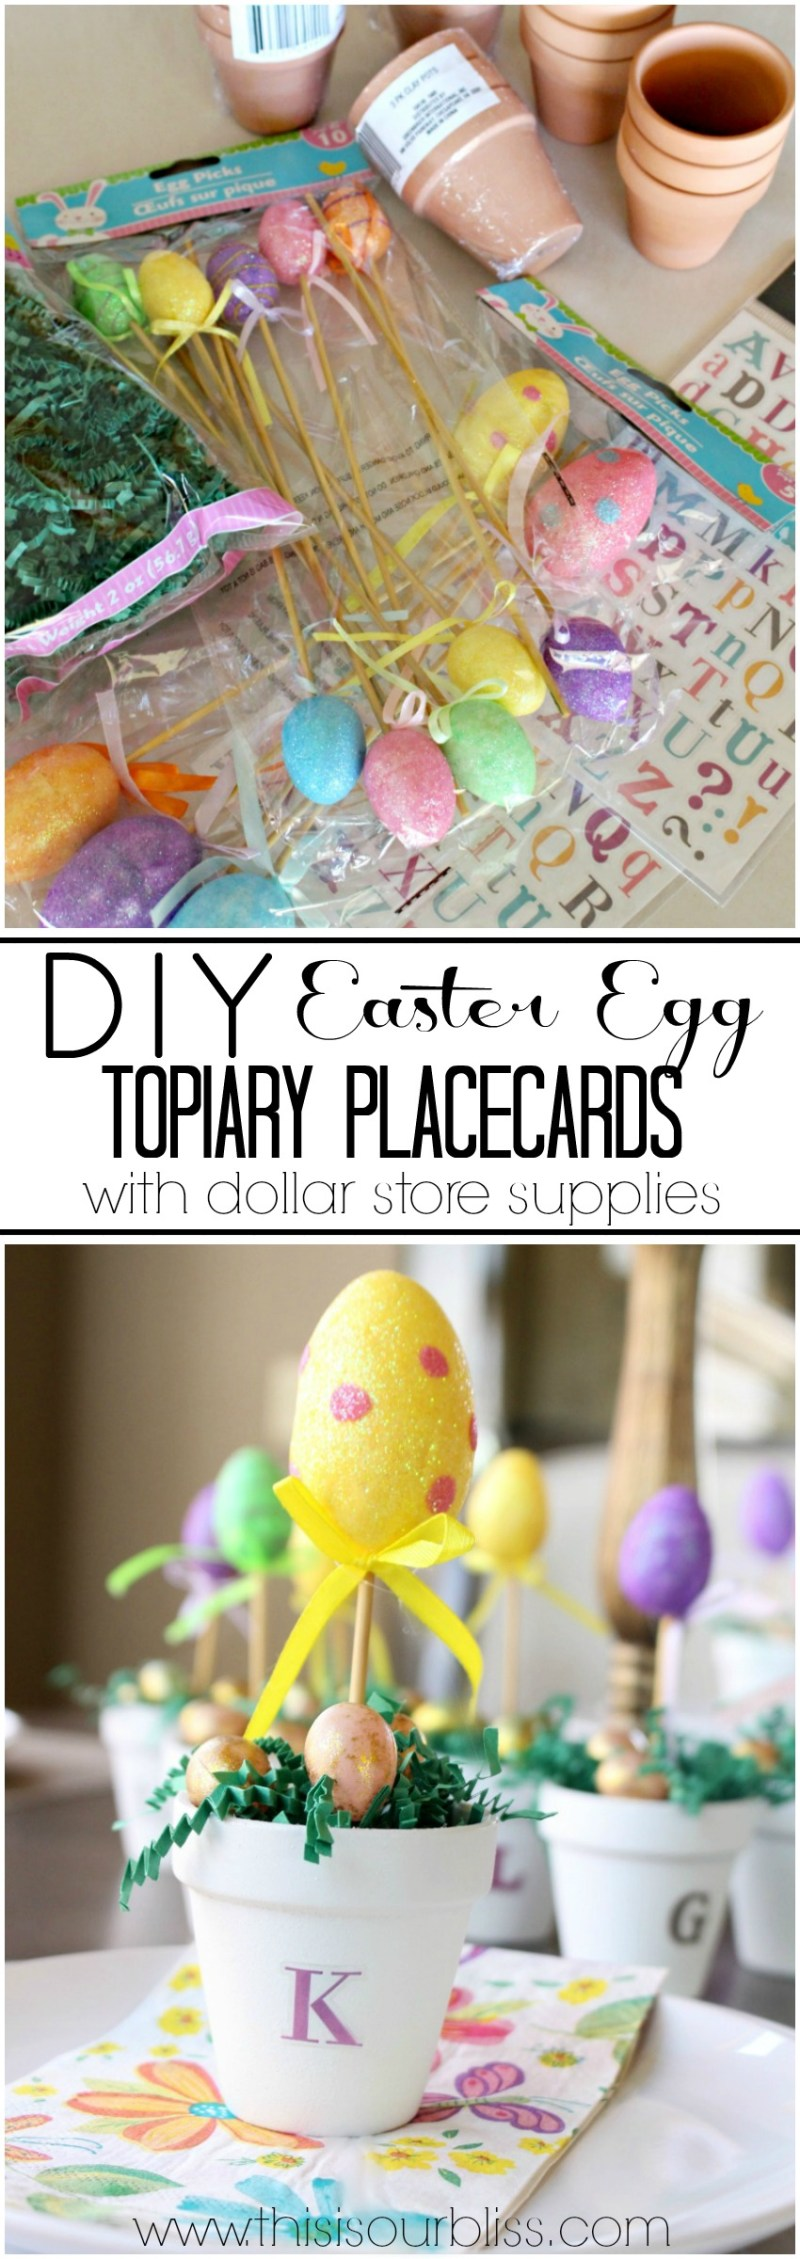 DIY Easter Egg Topiary Placecards | Easter Table Decor made from Dollar store supplies | This is our Bliss